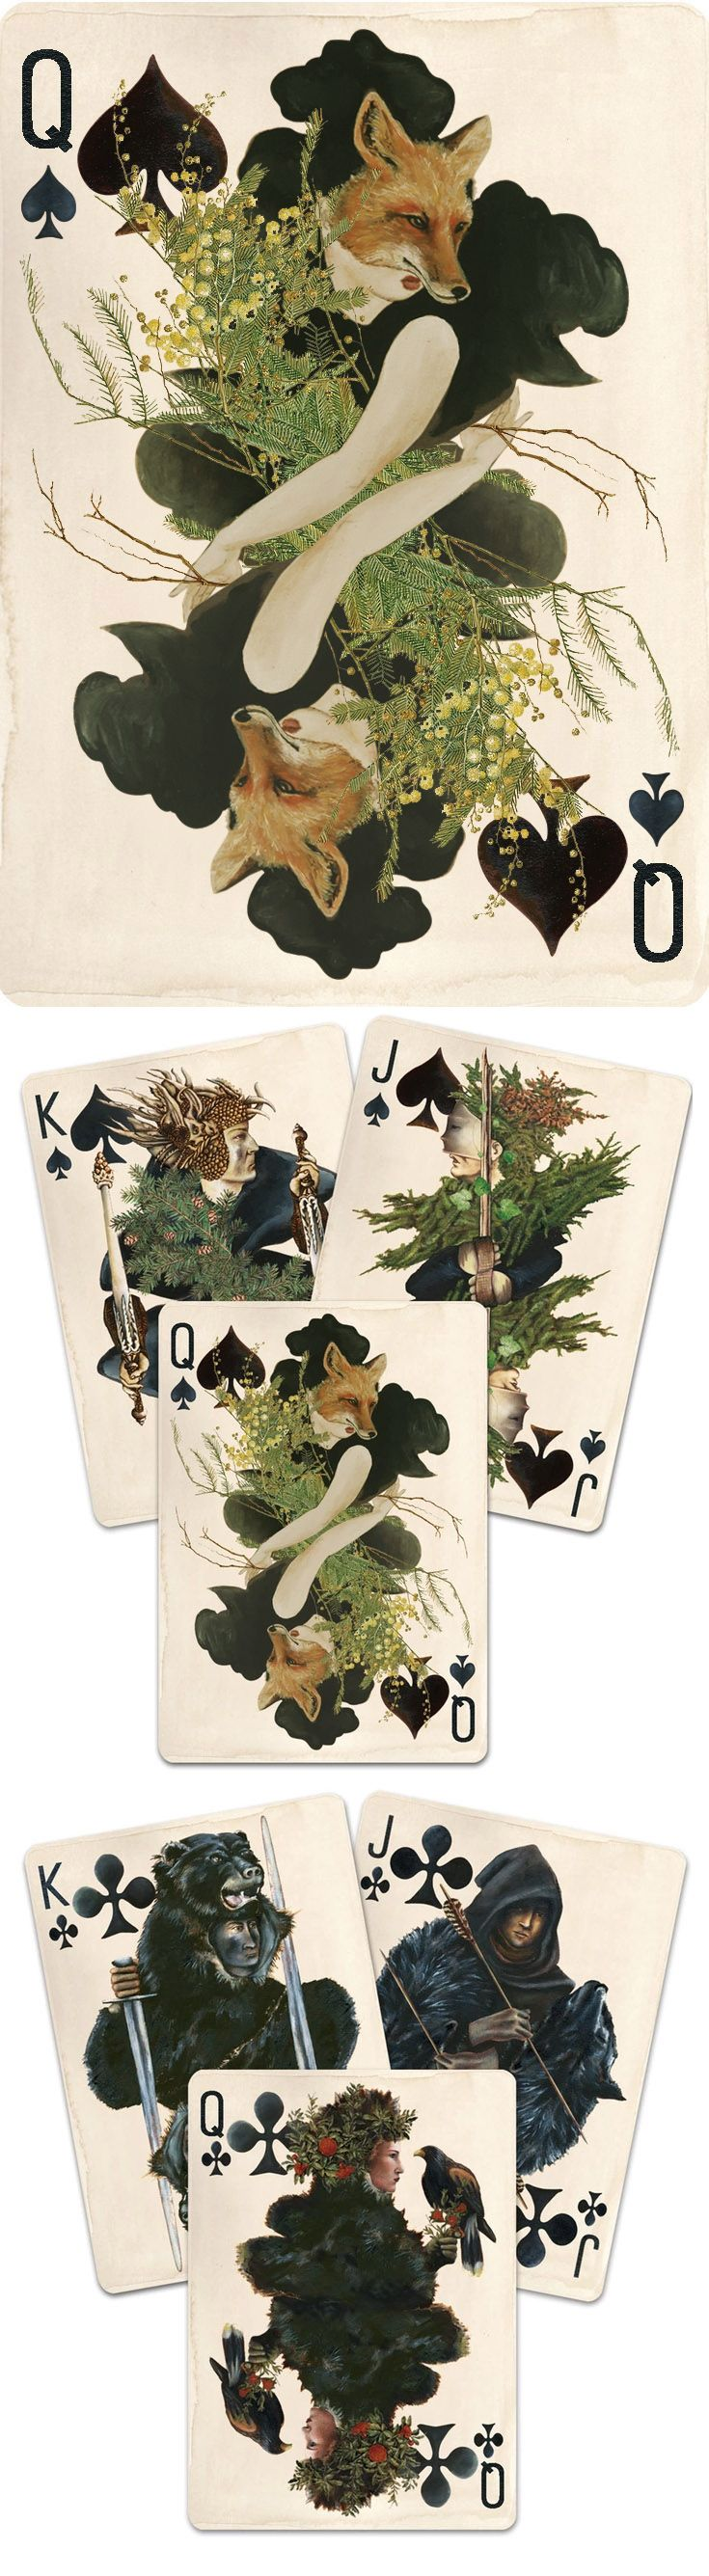 Custom Playing Cards by Uusi https://www.kickstarter.com/projects/1244376122/pagan-custom-playing-cards